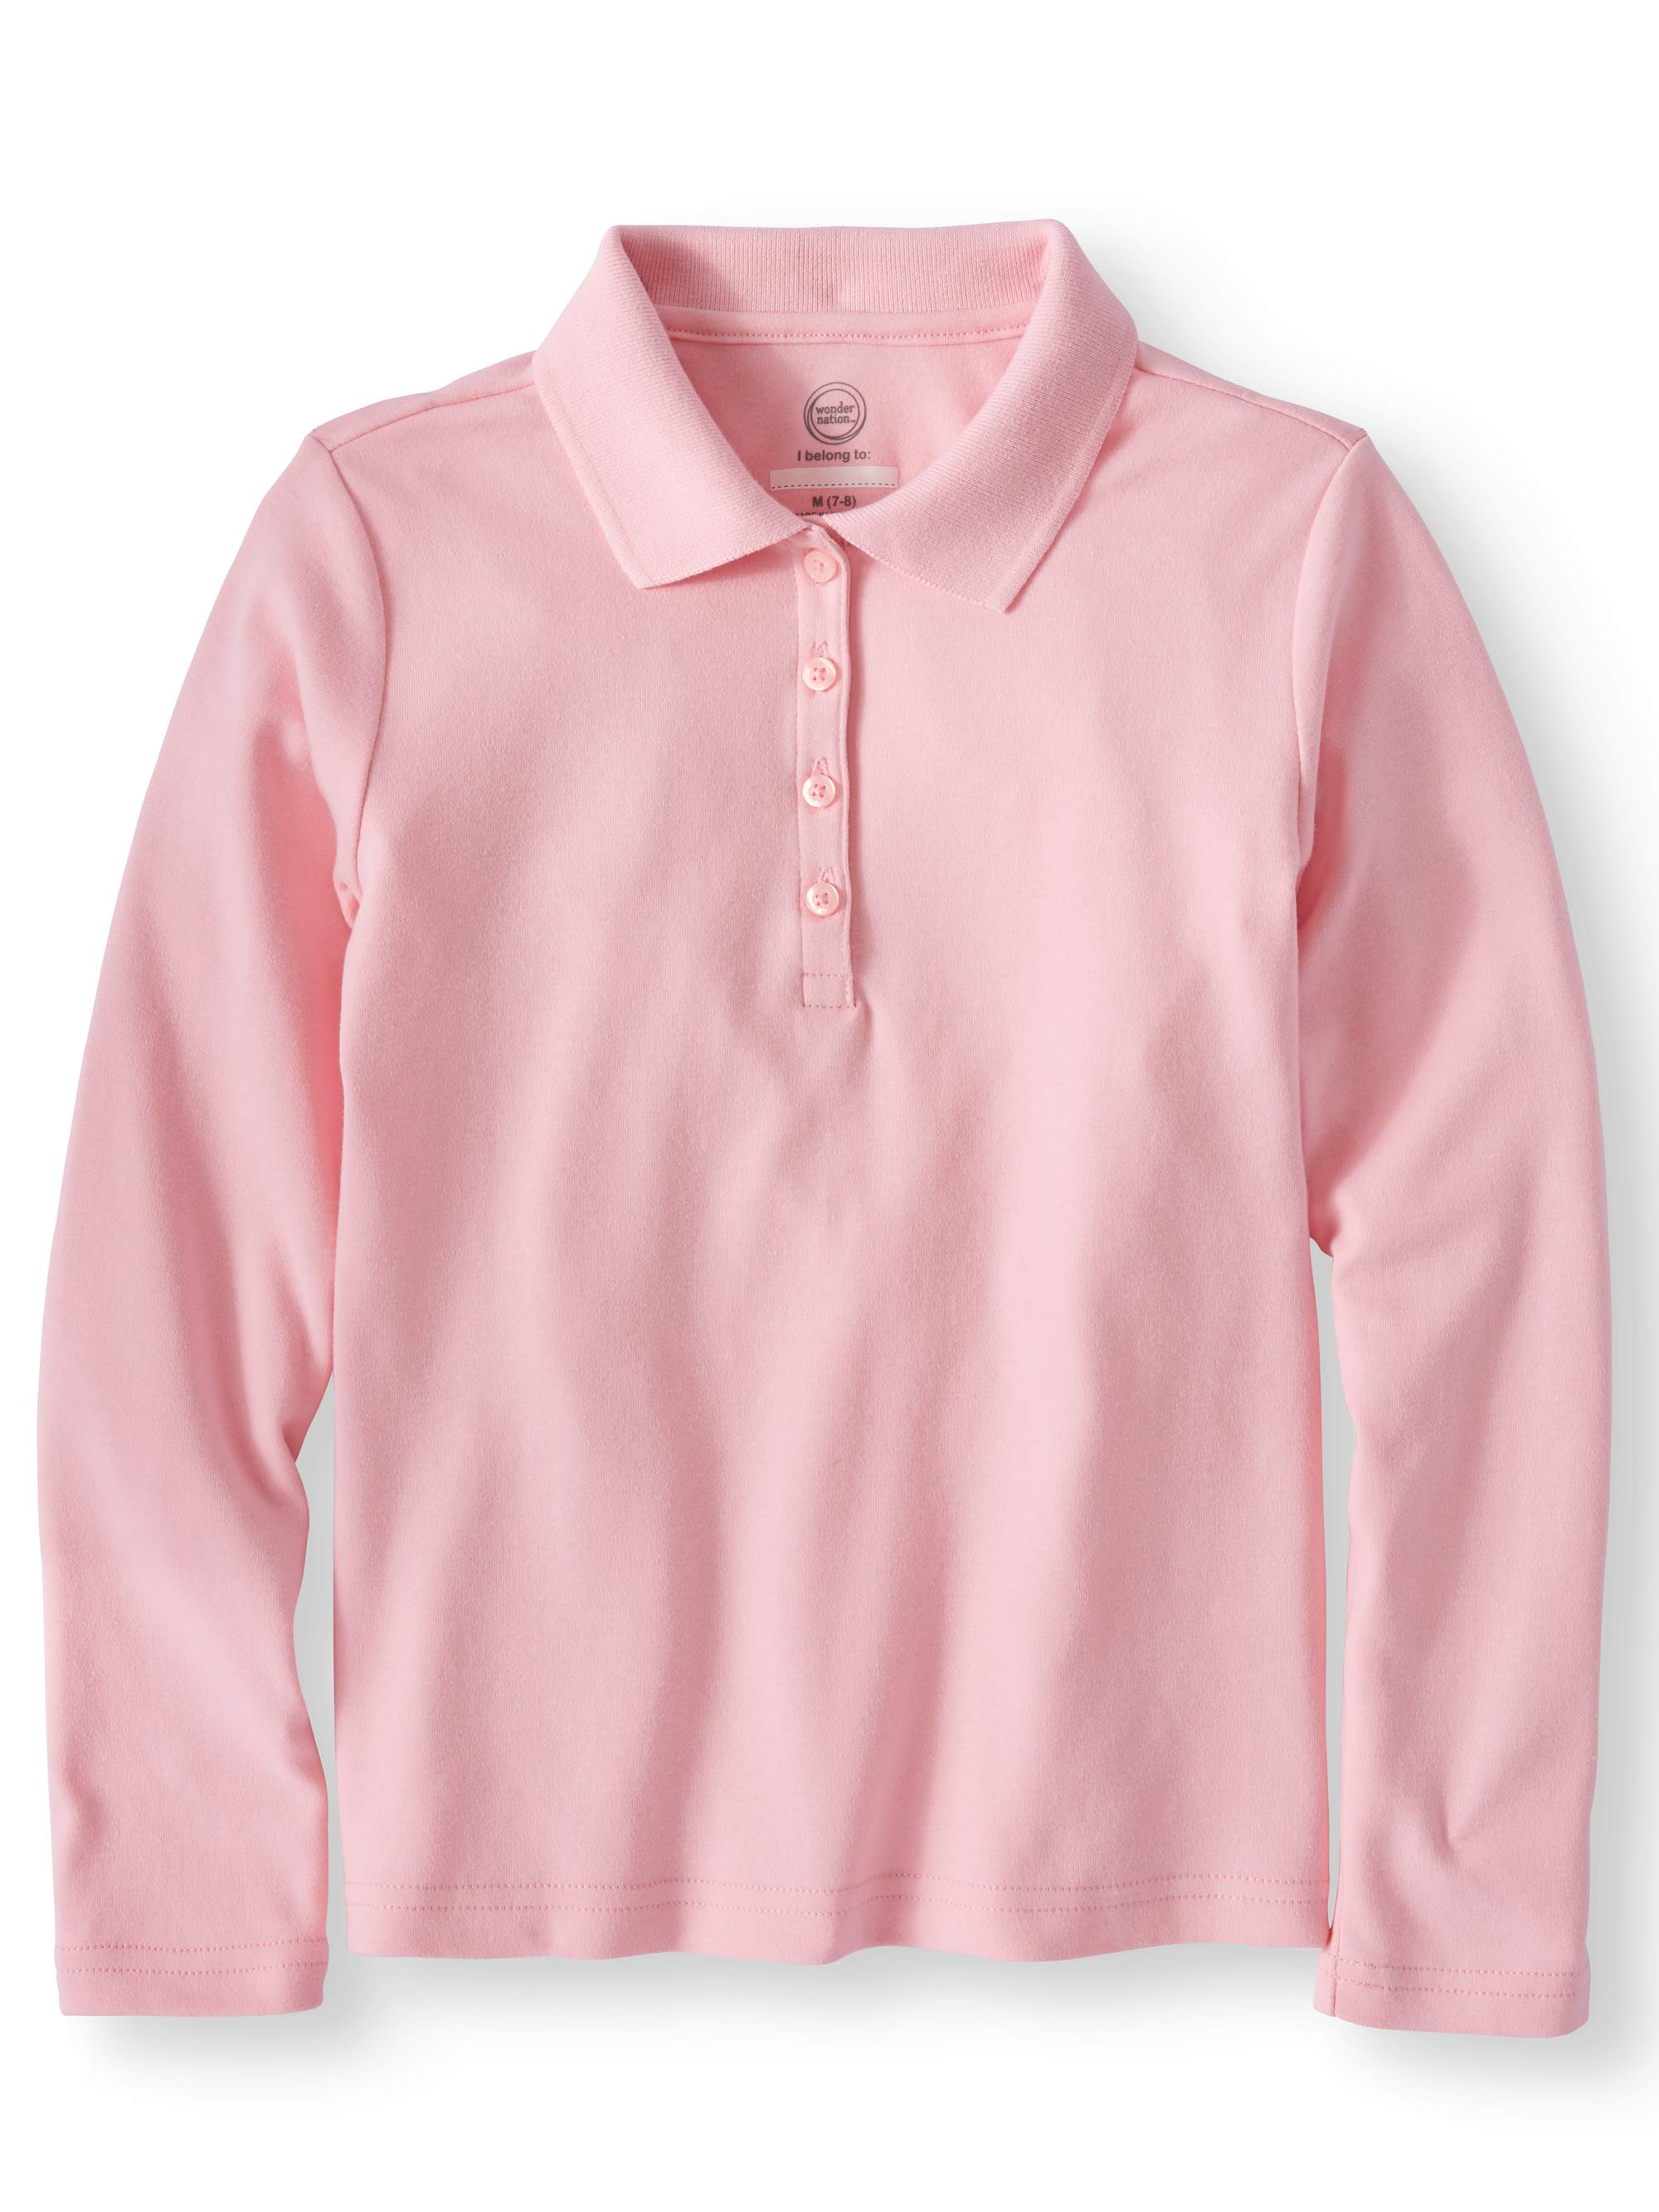 Girls School Uniform Long Sleeve Interlock Polo